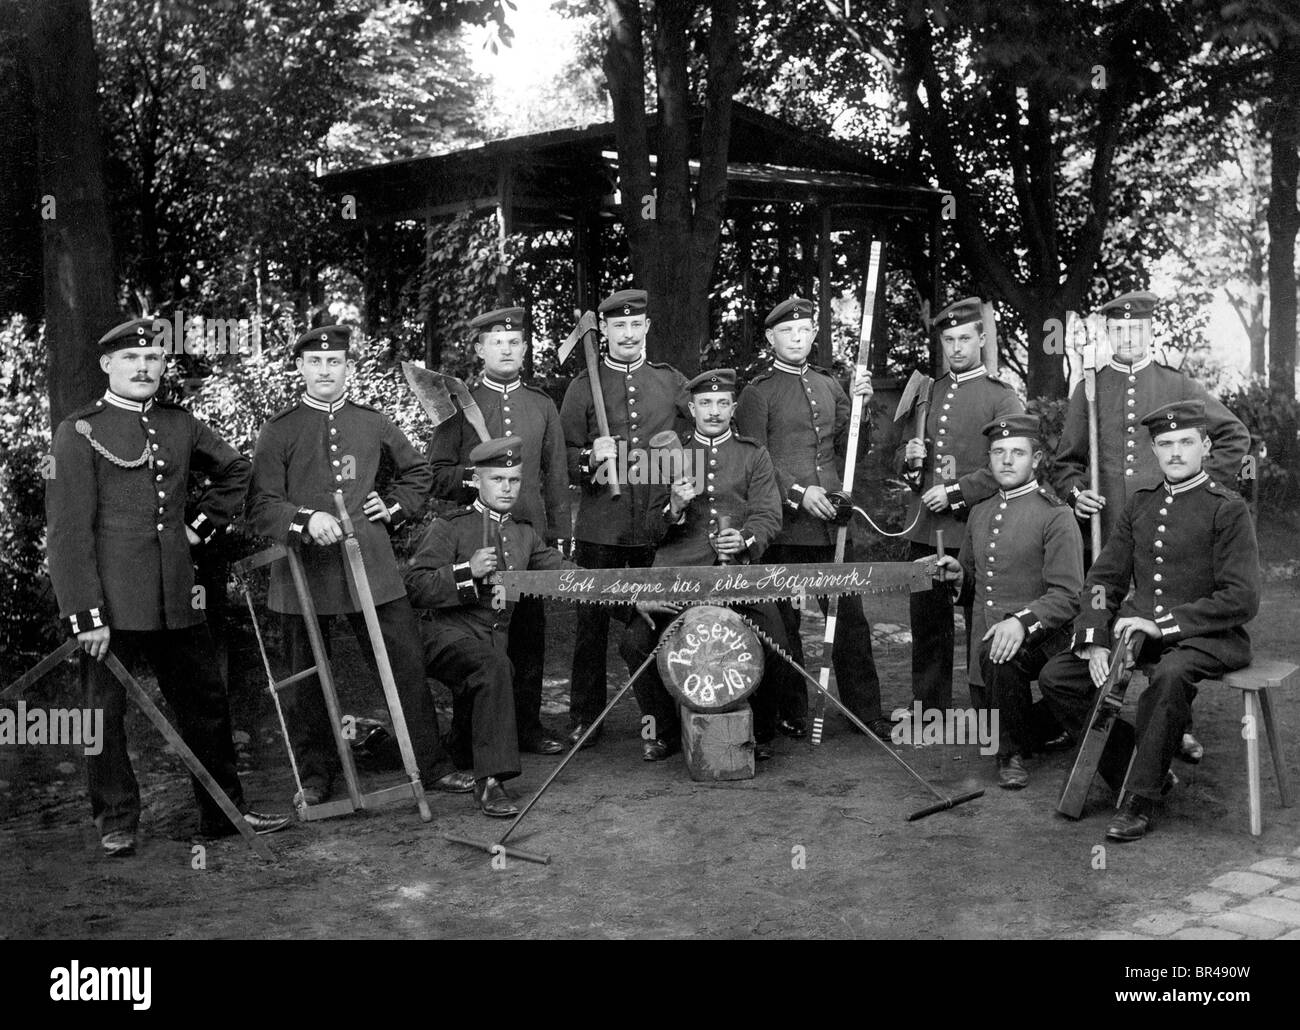 Historical image, reservists with tools, ca. 1908 - Stock Image